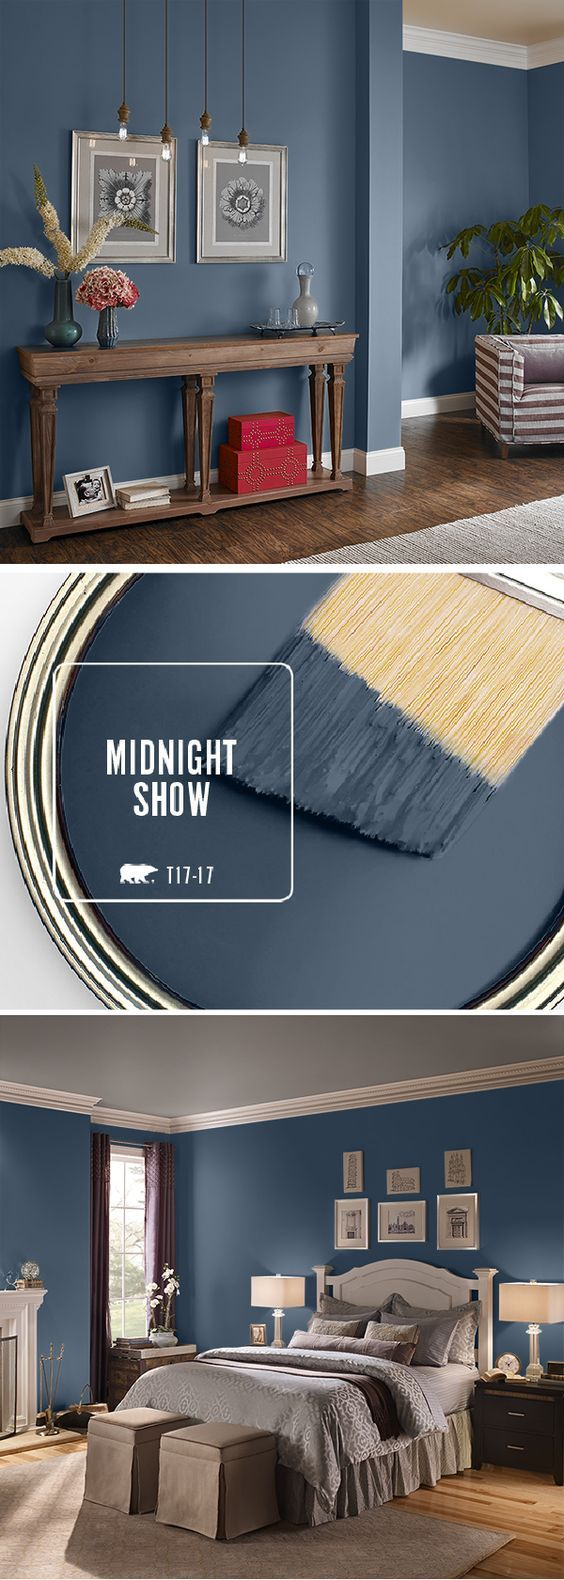 bedroom color inspiration and project idea gallery diy home